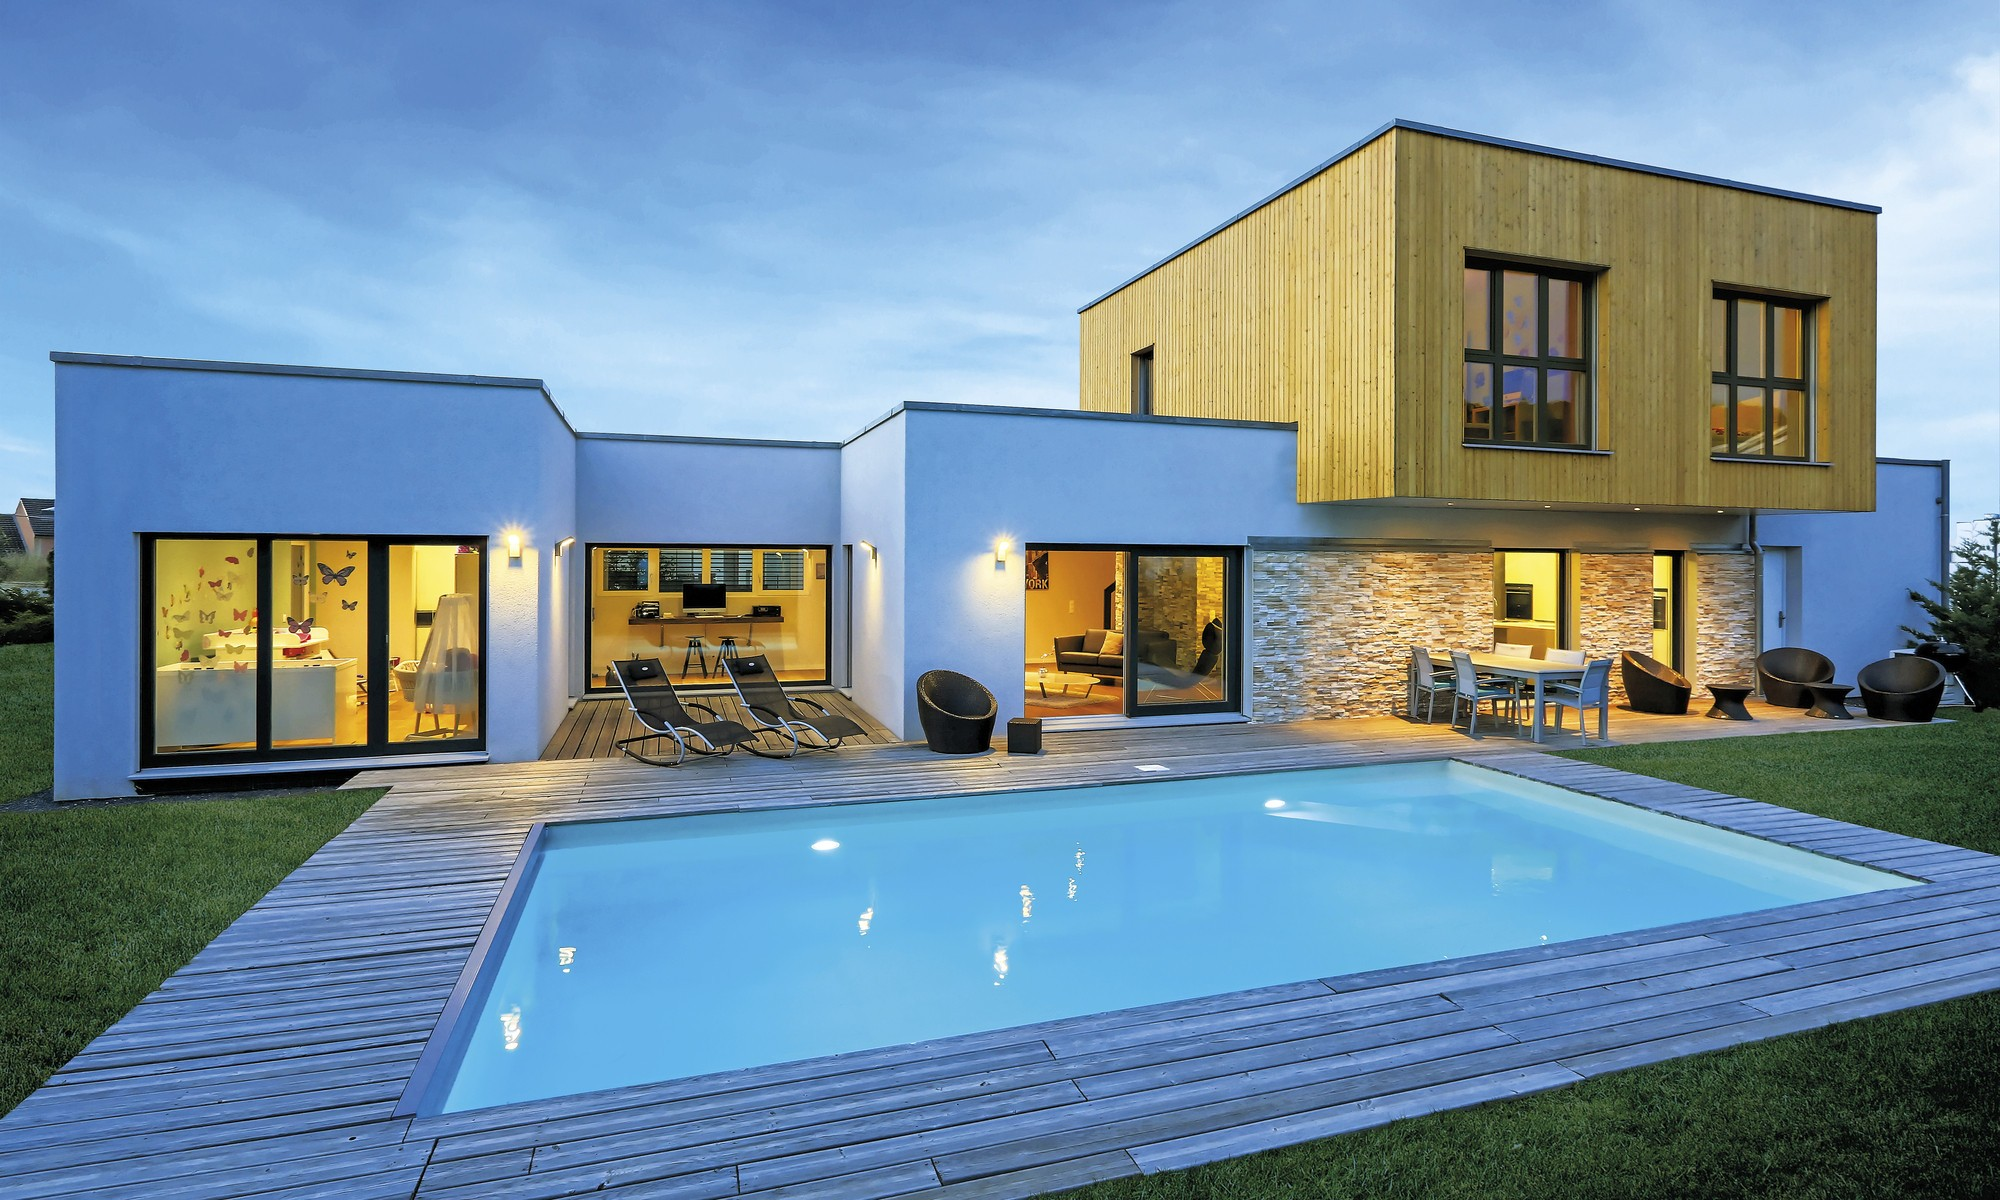 Custom-built prefabricated home with large, modern swimming pool, designed for relaxation